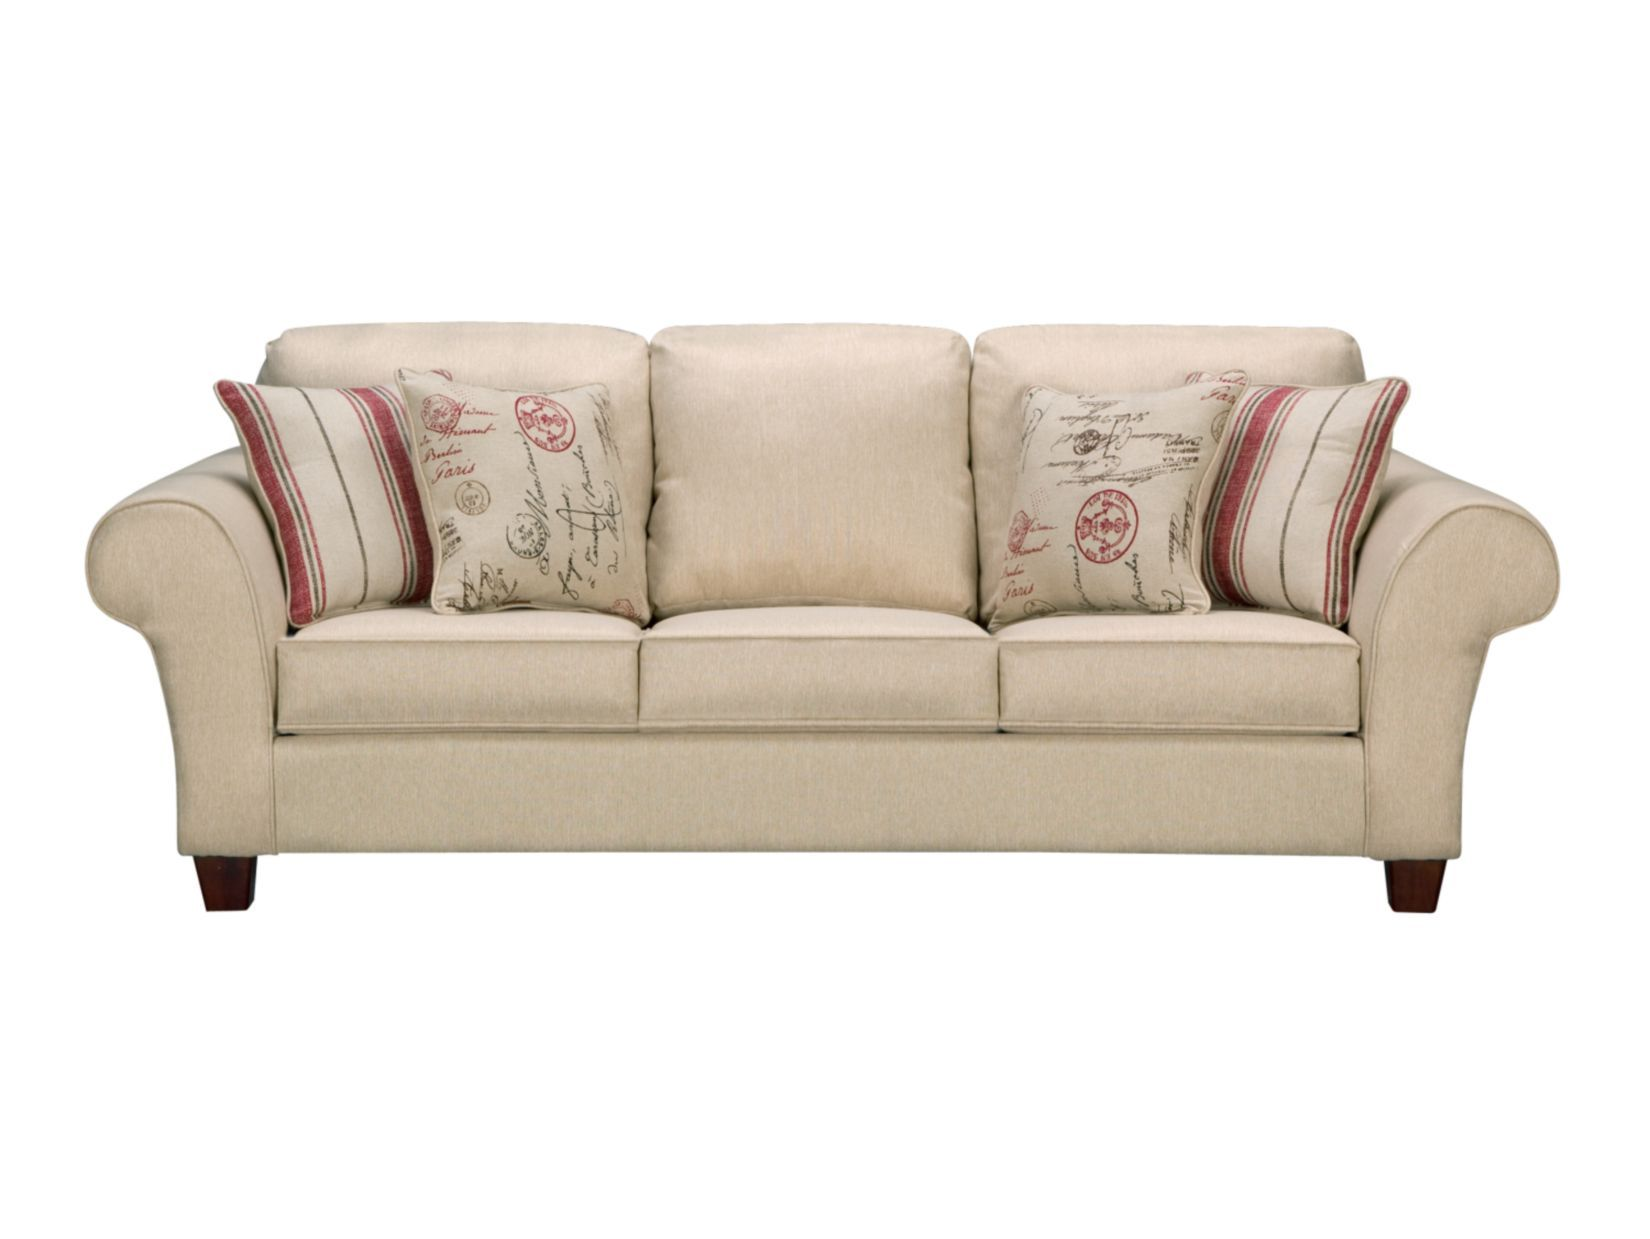 "Palmer Cream 92"" Sofa American Signature Furniture $499"